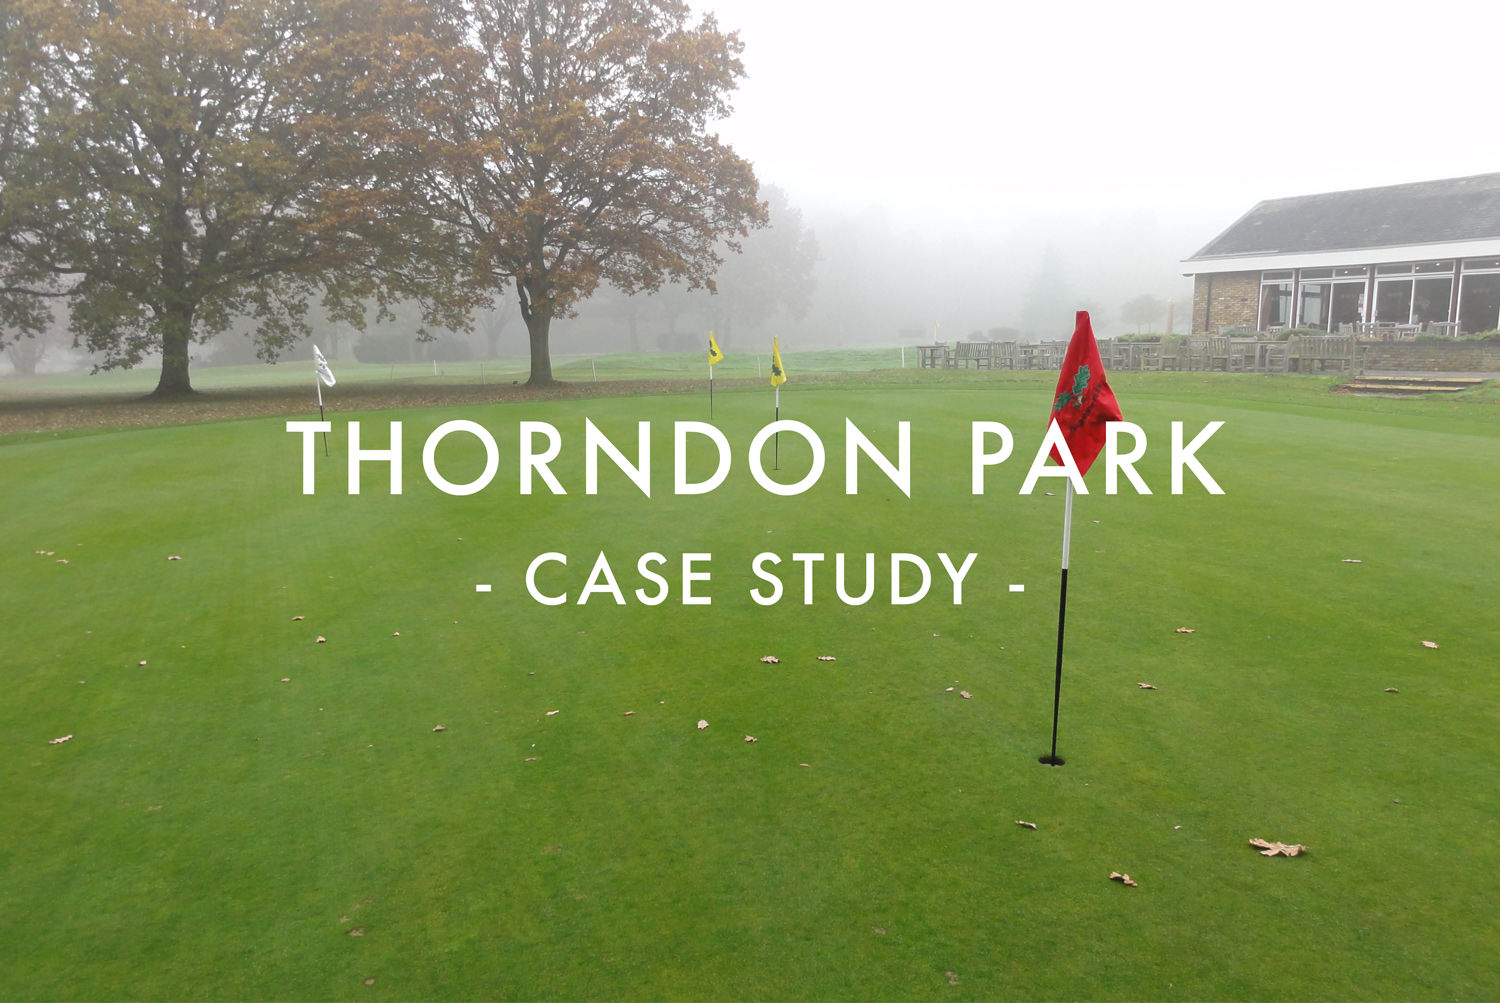 Thorndon Park - Case Study